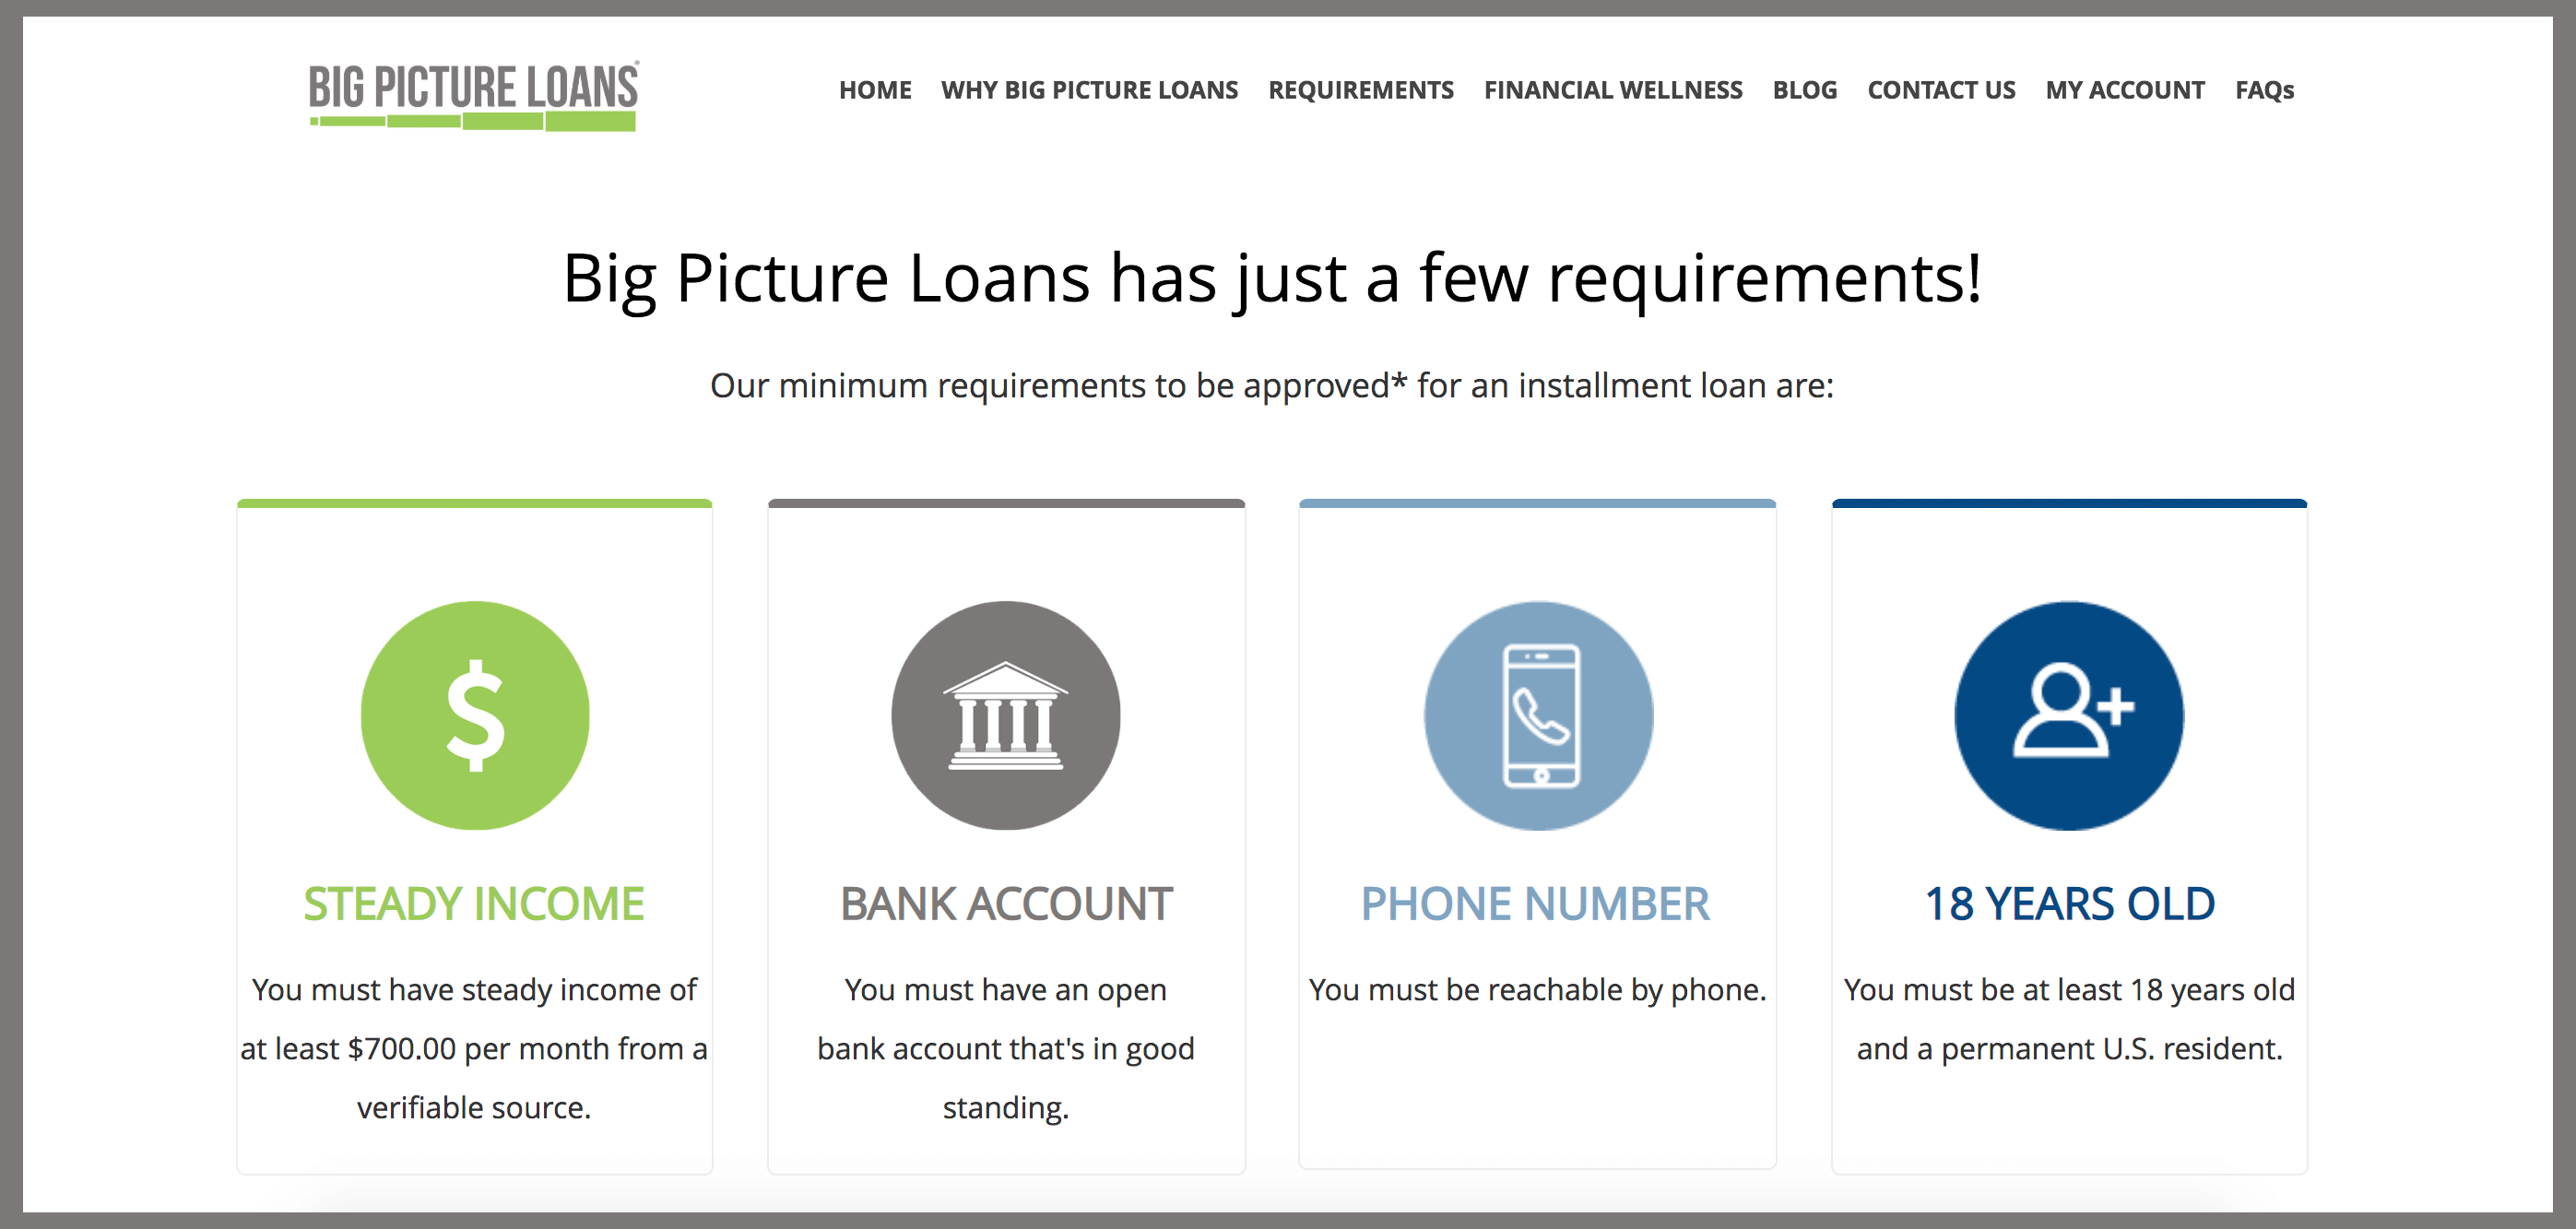 Loans Similar To Big Picture Loans